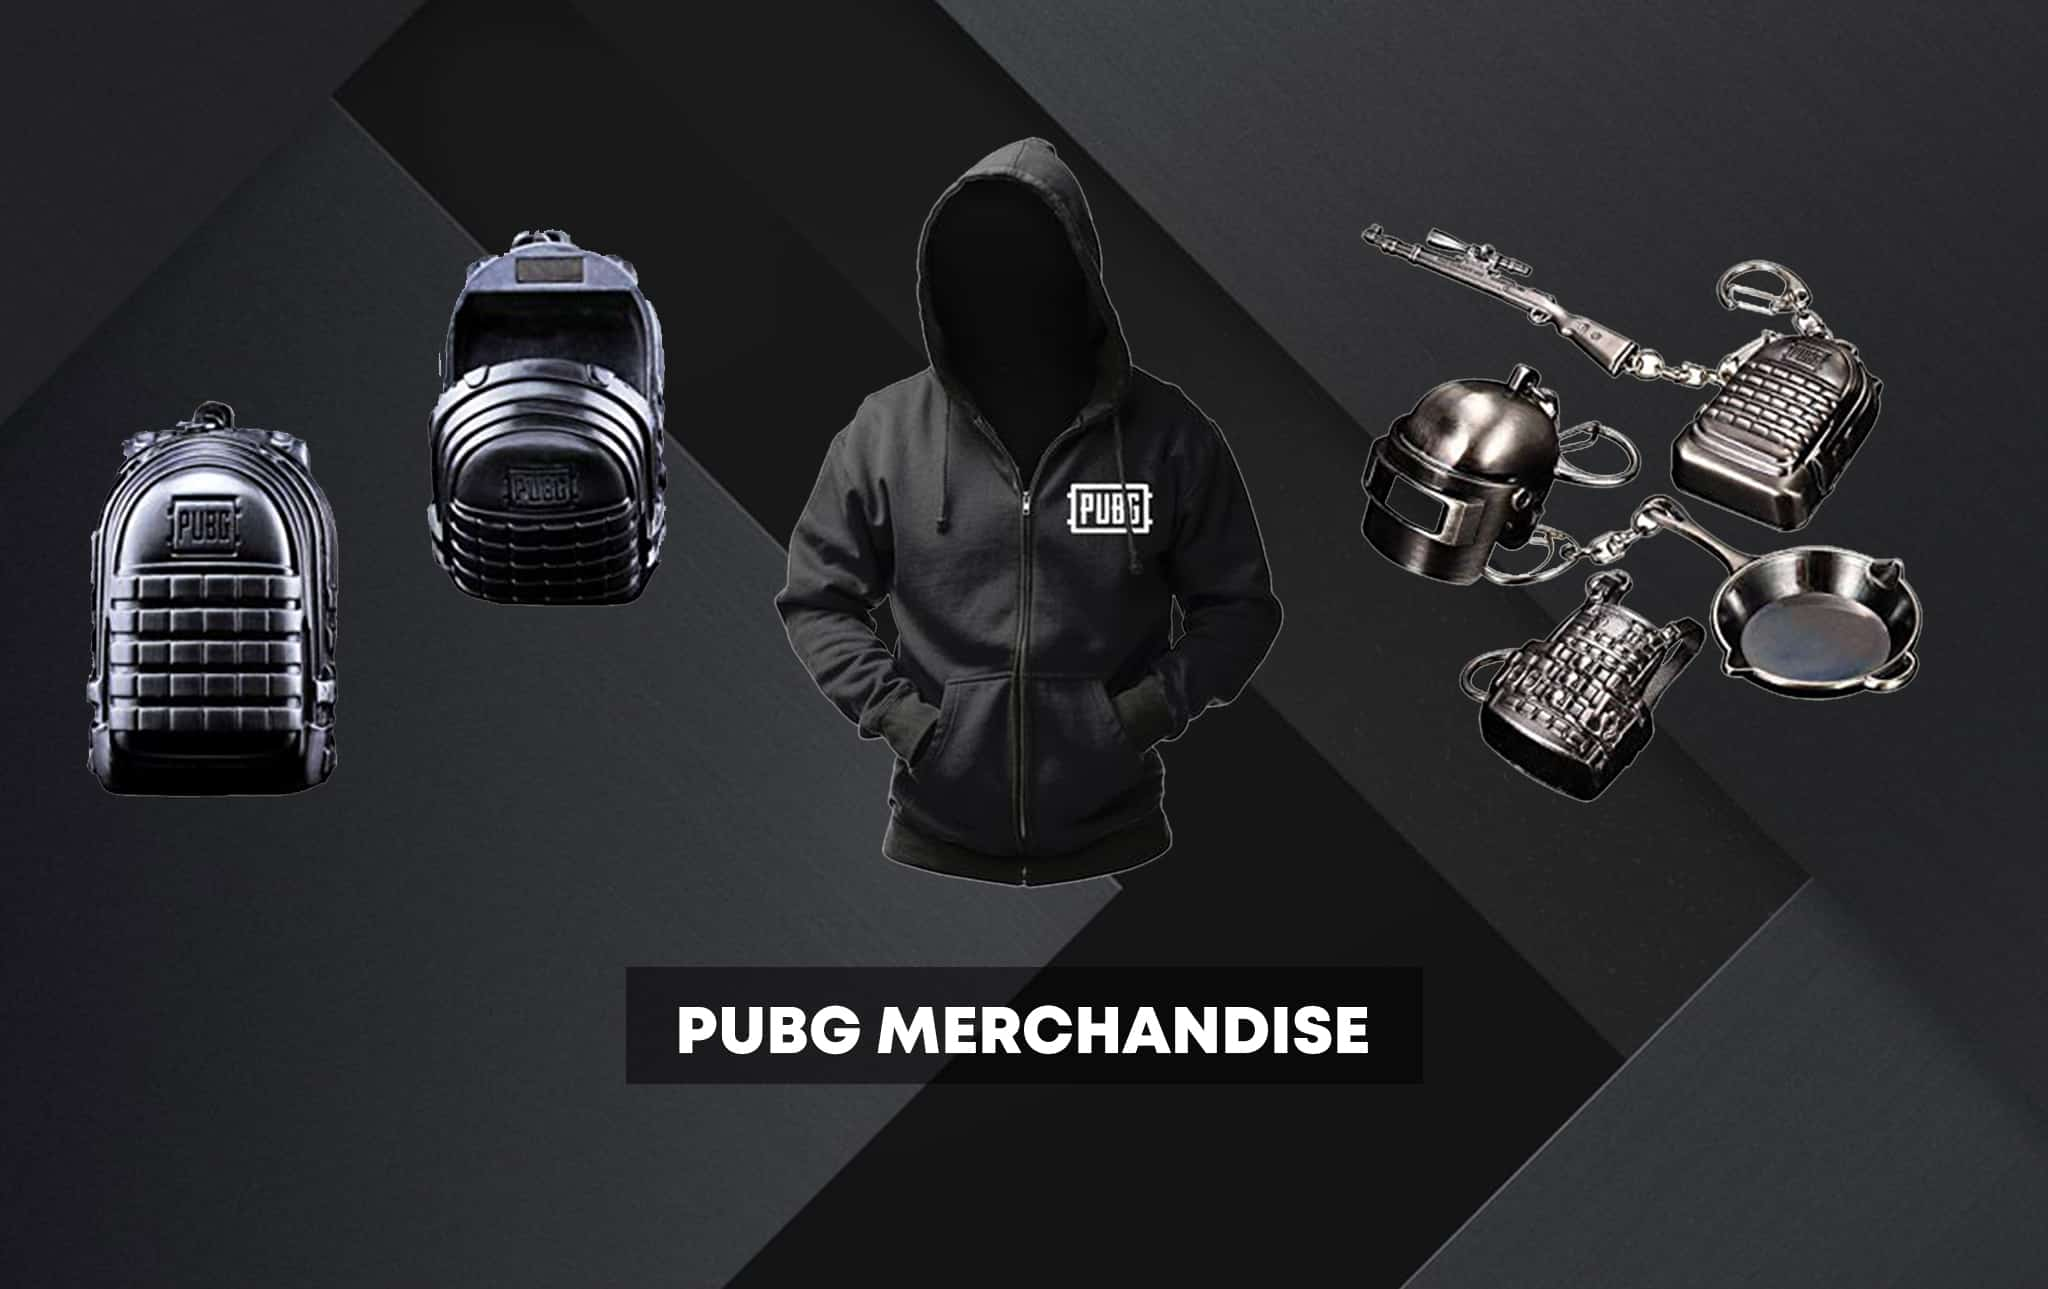 6bb25d1f PUBG Merchandise: T Shirts, Clothes, Collectibles from the Game